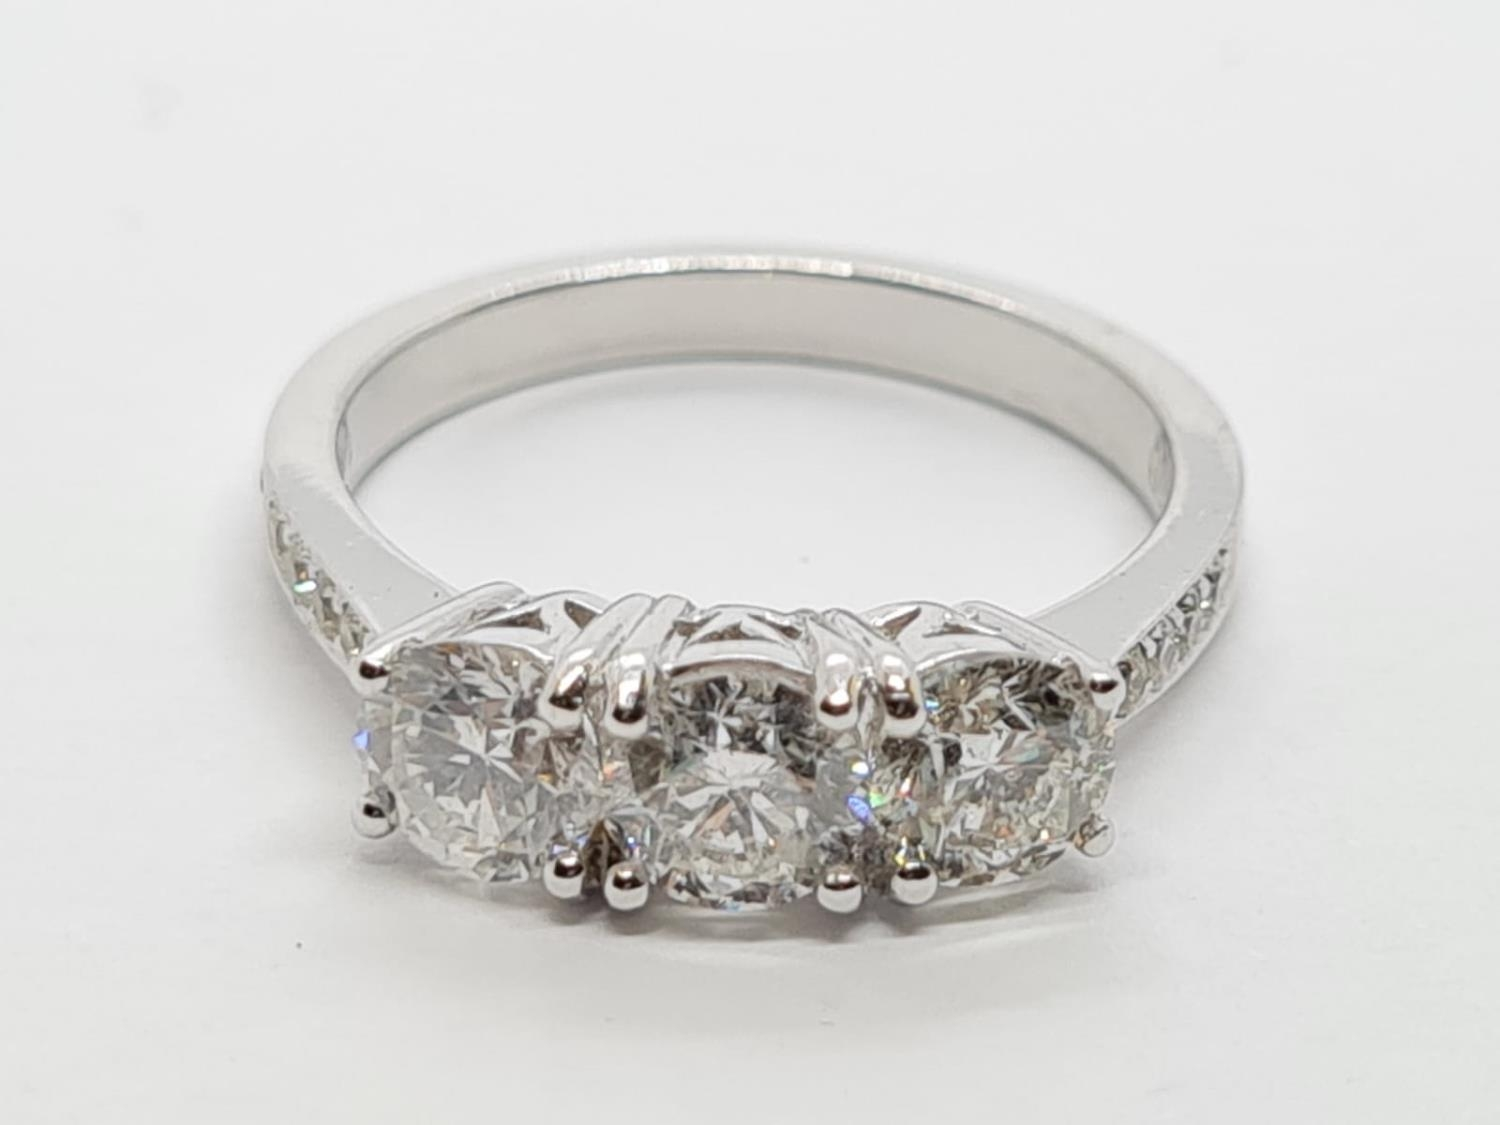 18ct White Gold with Trilogy set of 1.5ct Diamonds and further encrusted diamonds on the shoulder.